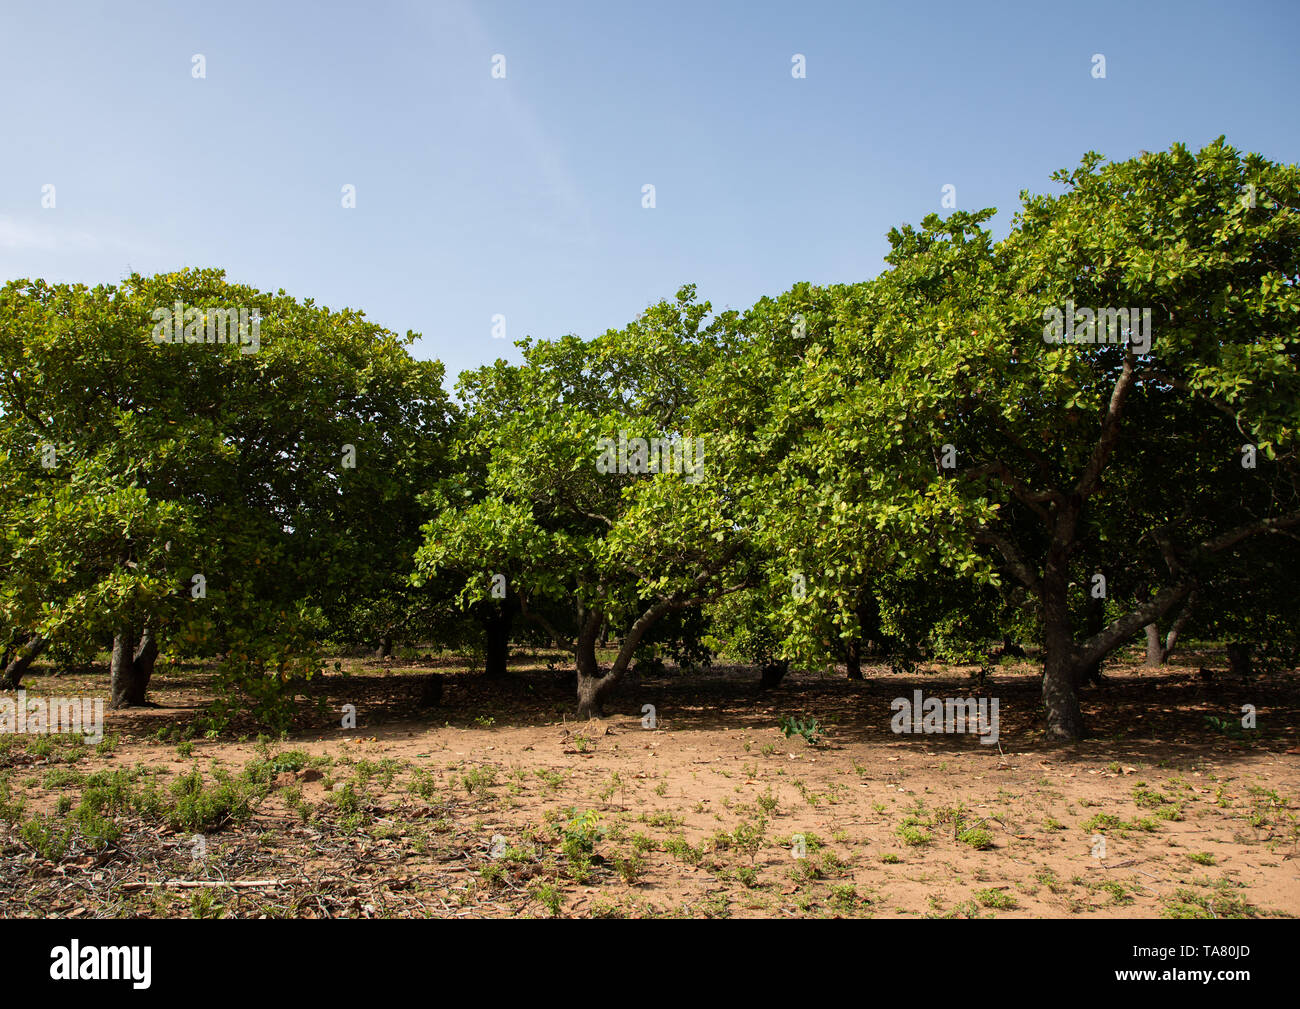 Plantation of shea butter or karite trees, Savanes district, Shienlow, Ivory Coast Stock Photo